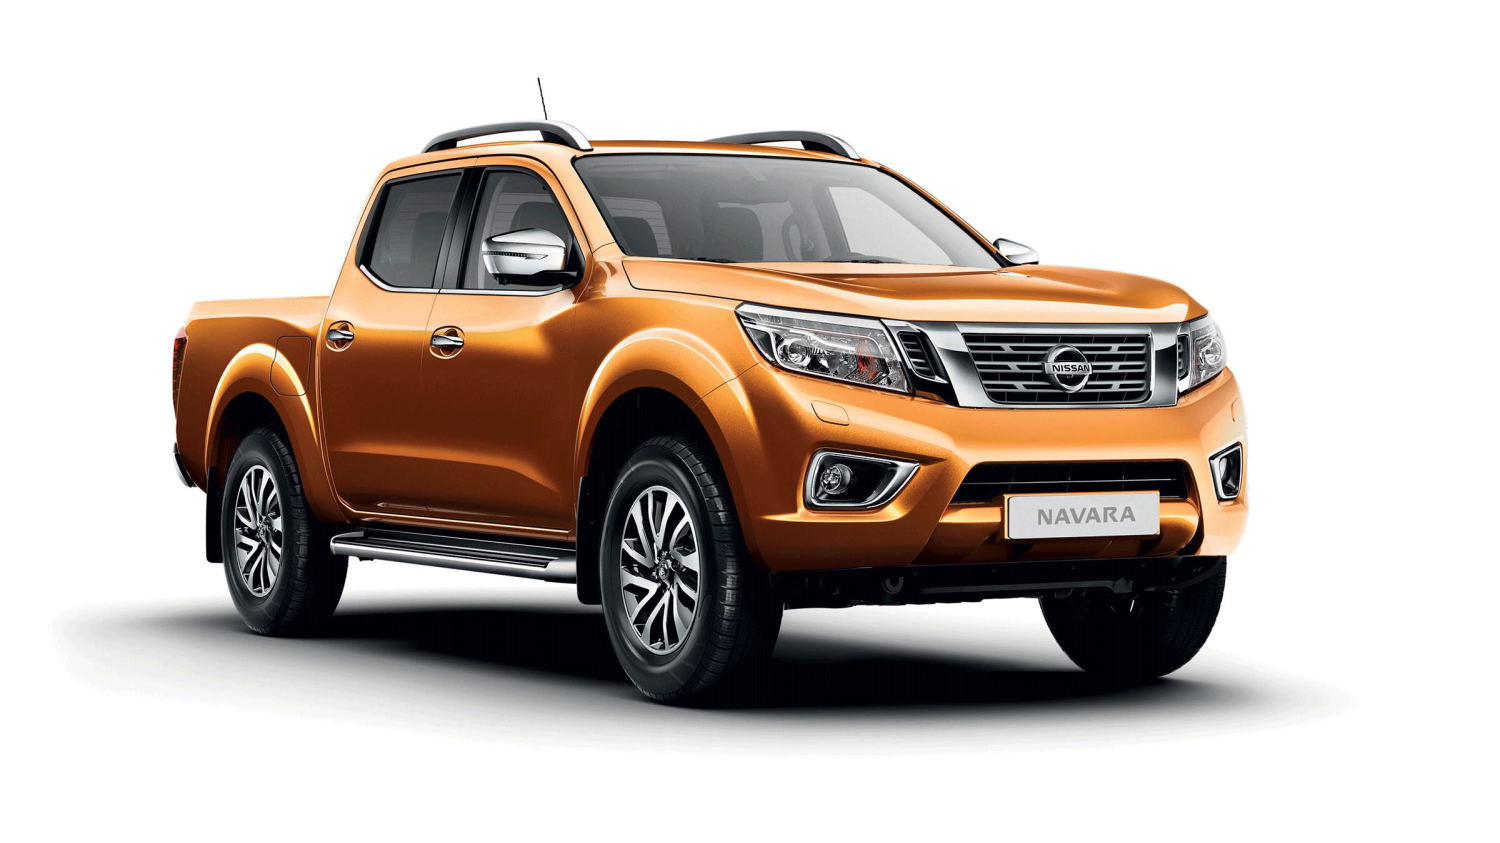 design nissan navara 4x4 pick up nissan. Black Bedroom Furniture Sets. Home Design Ideas